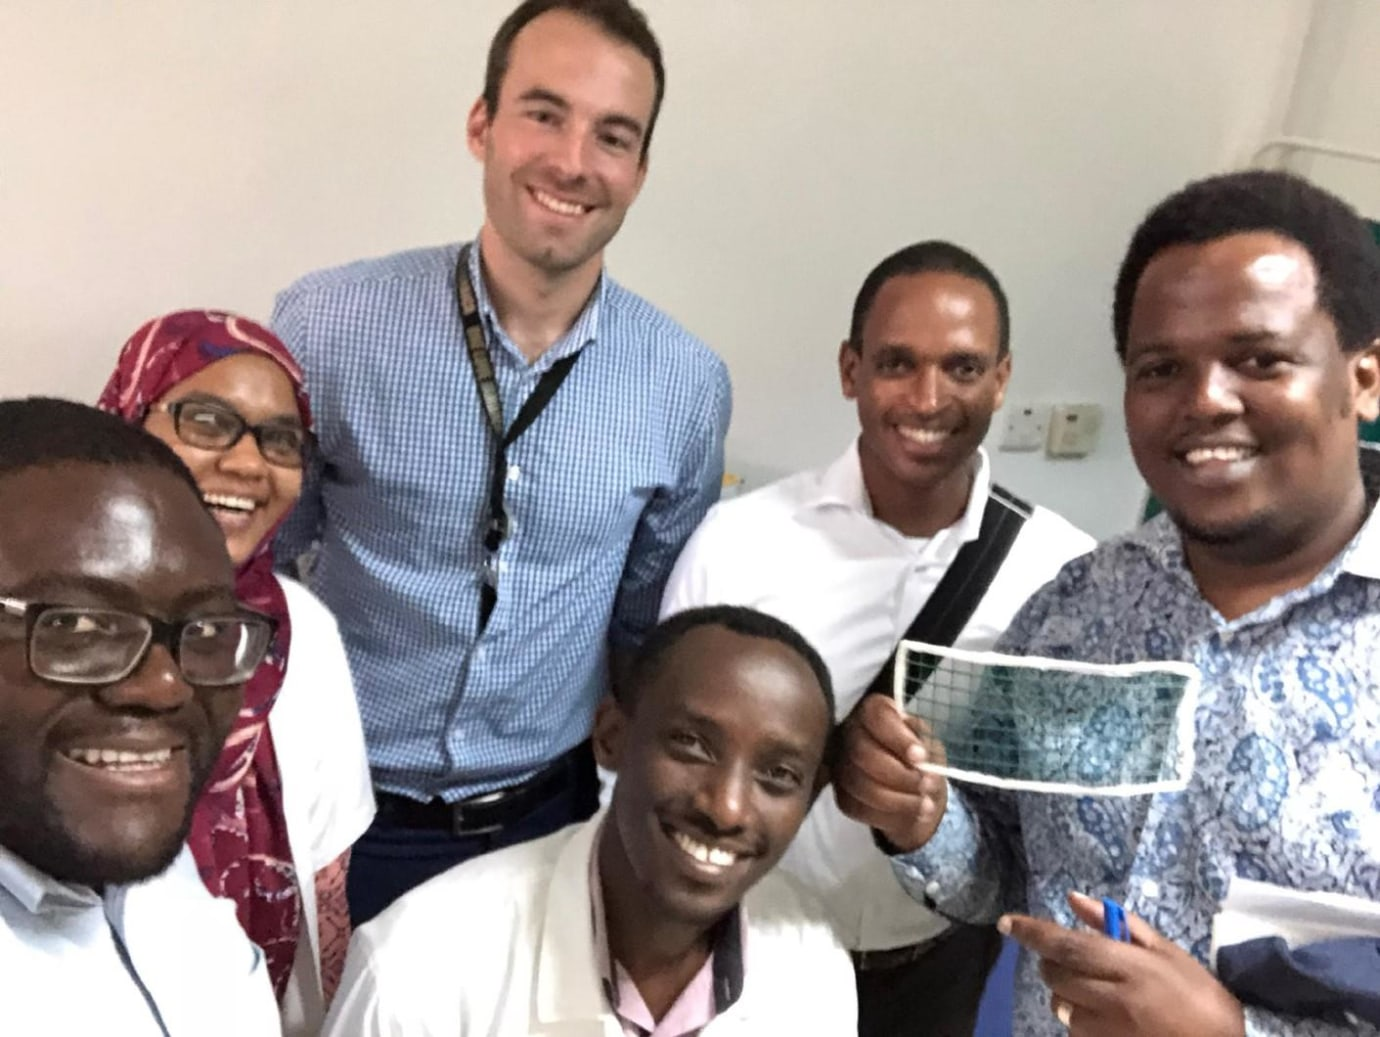 Drs. Kenedy Foryoung, Azza Naif, Fabian Laage Gaupp, Ivan Rukundo, Frank Minja, and Erick Mbuguje (from left to right) showcasing a self-made CT biopsy grid